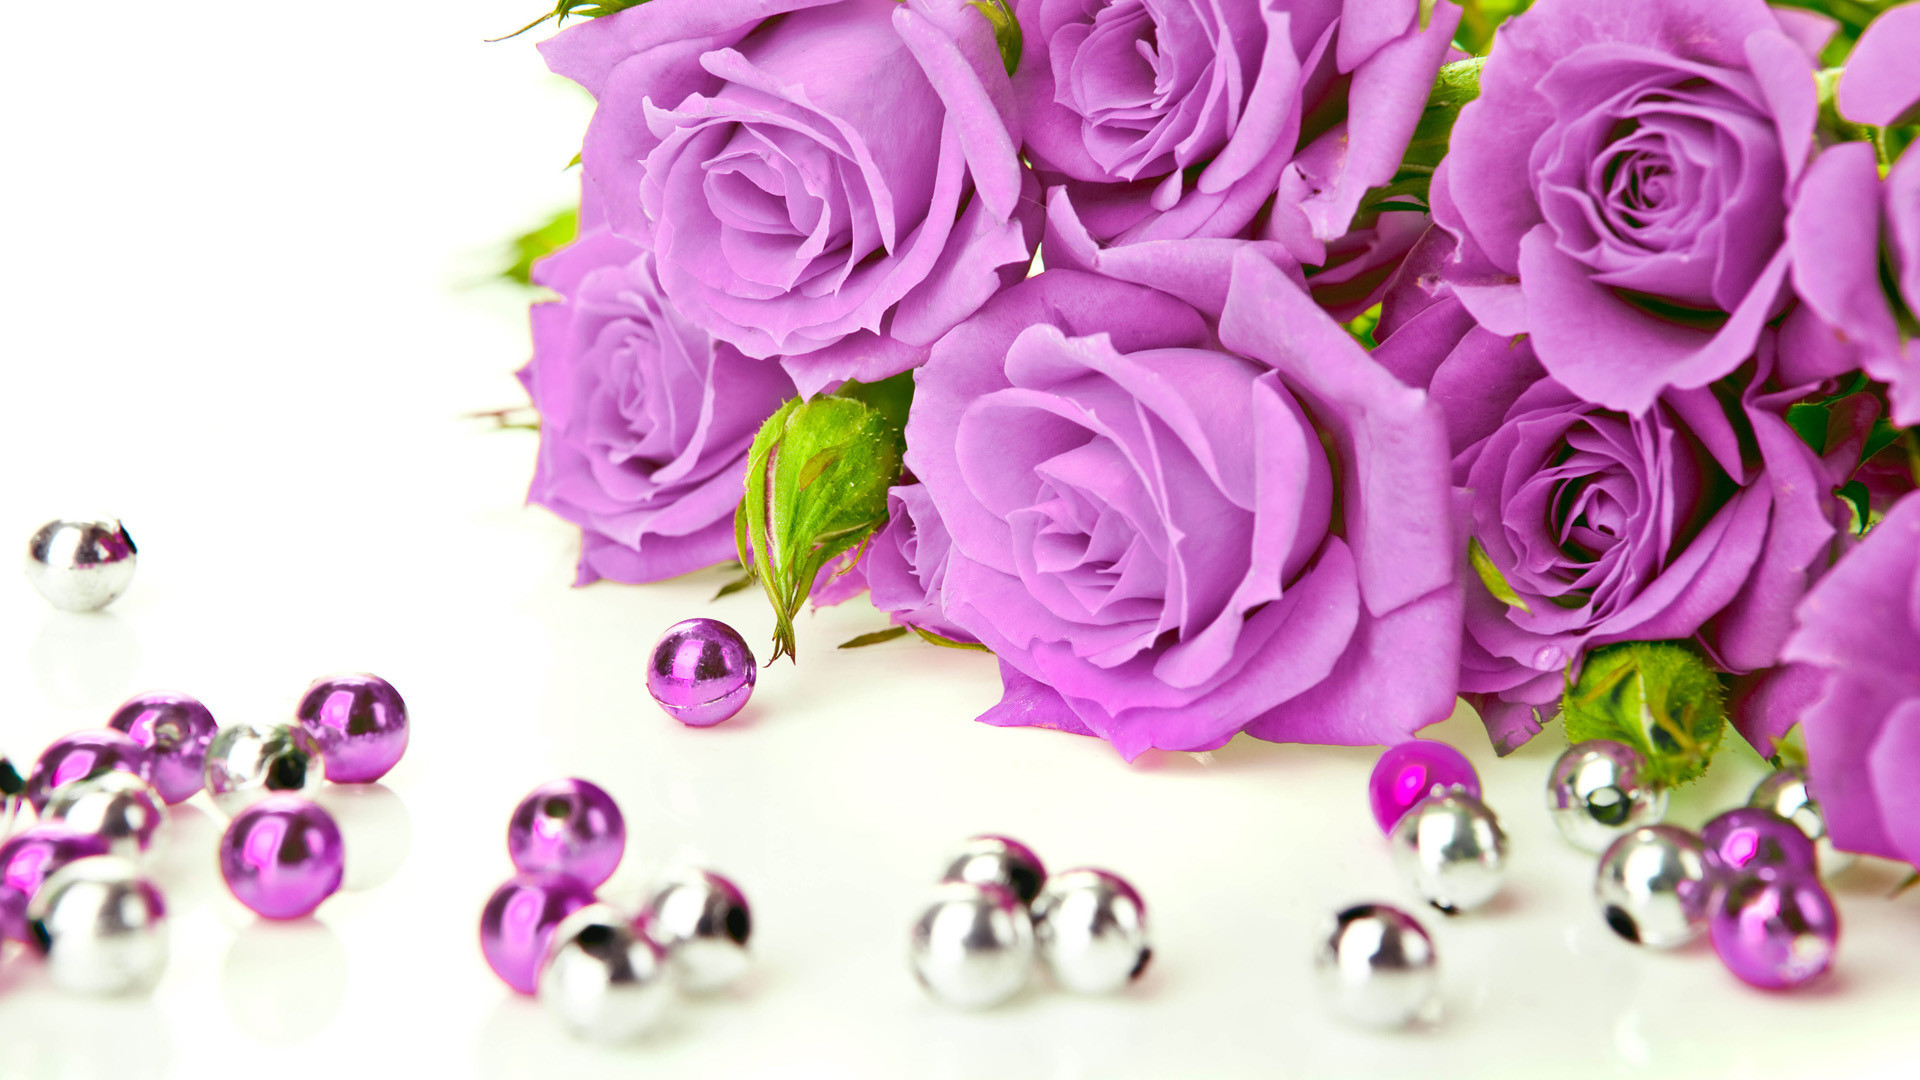 Res: 1920x1080, Beautiful photo gallery of purple rose wallpapers hd, Free download purple  pictures. You can download these high resolution purple rose images and use  as ...